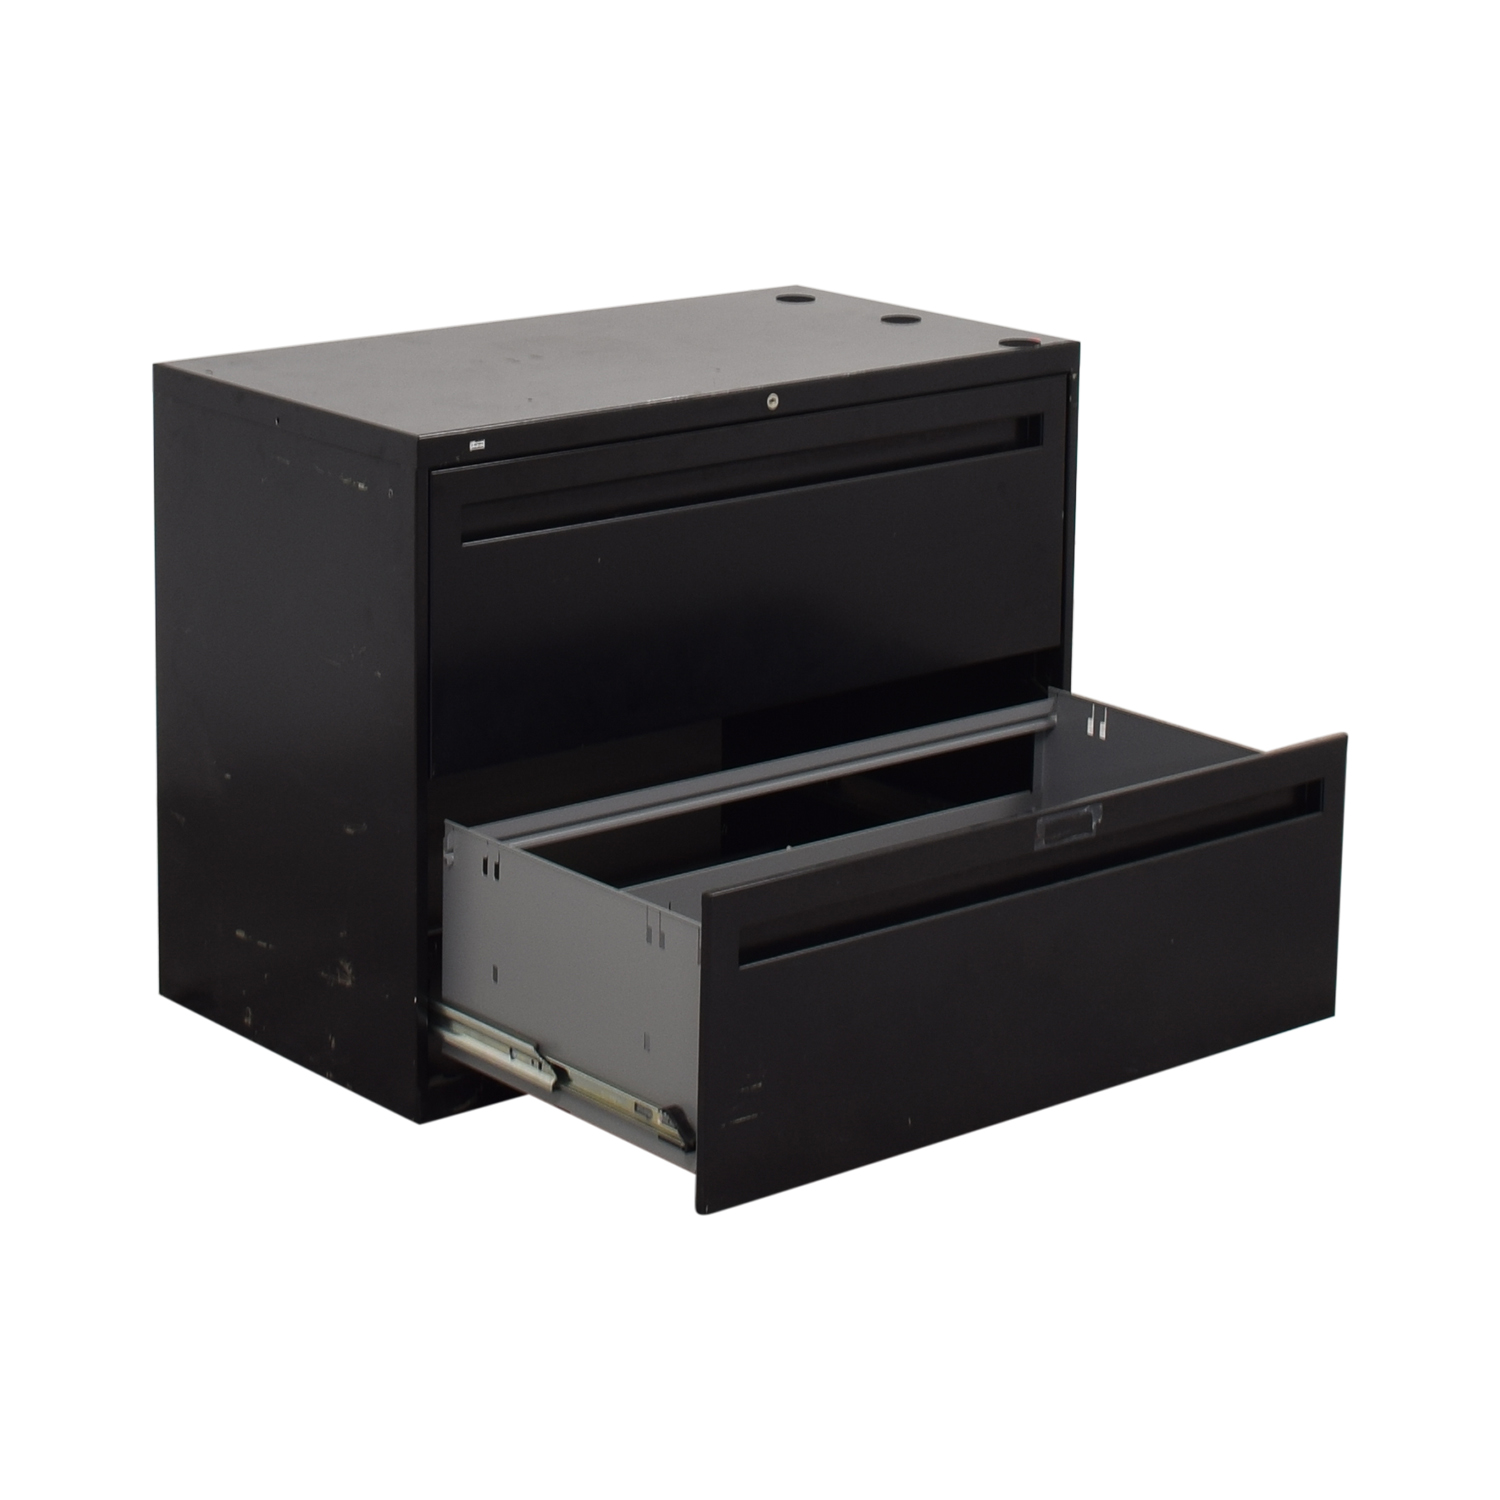 Hon HON 2-Drawer Lateral File Cabinet Storage